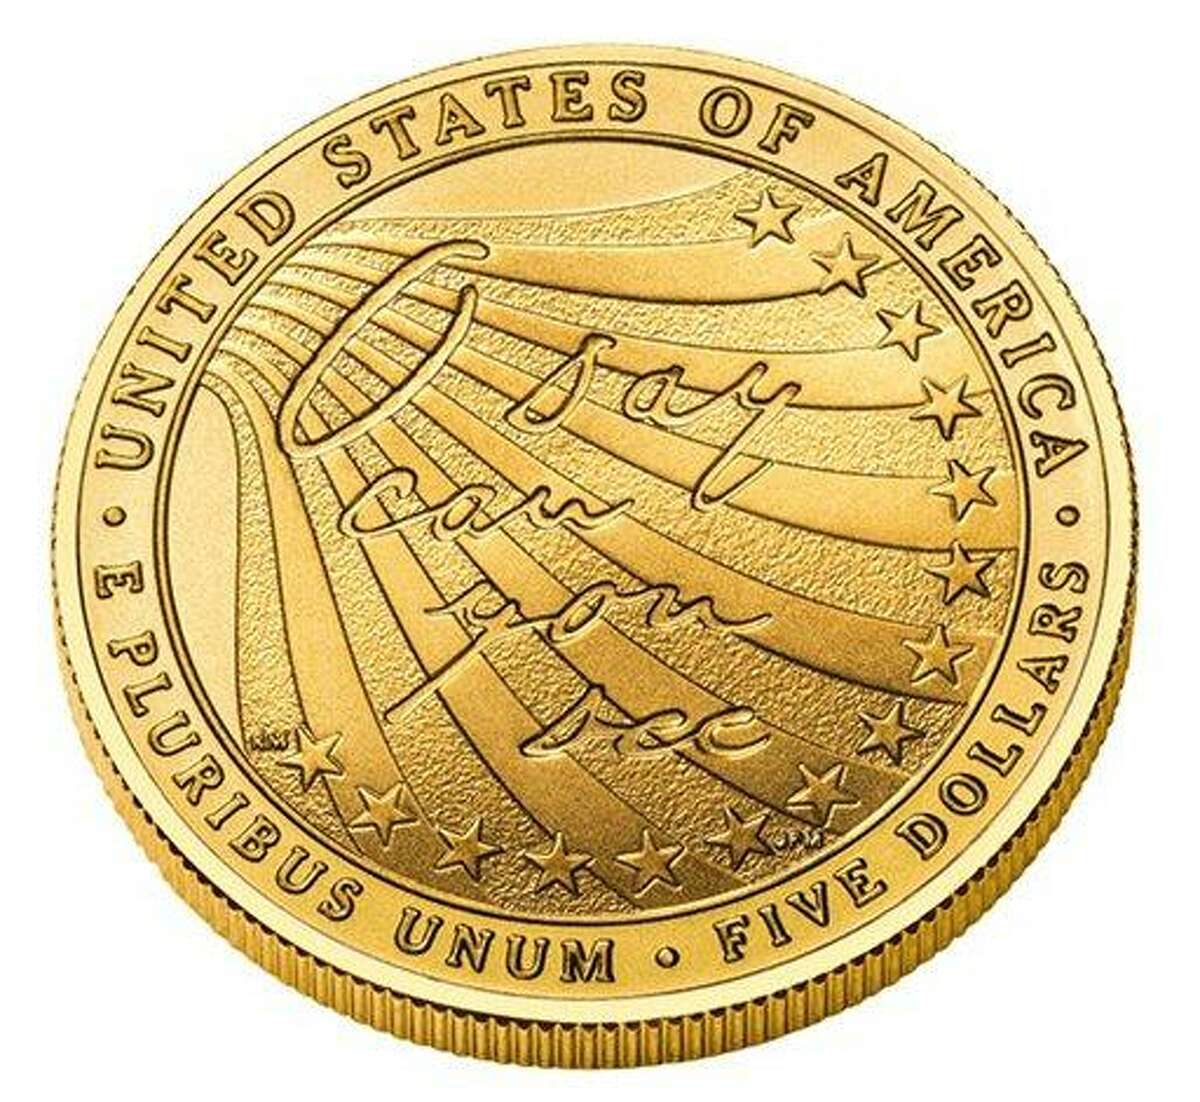 """This image provided by Star-Spangled 200 shows the reverse side of a gold coin commemorating the 200th anniversary of the writing of """"The Star-Spangled Banner."""" The U.S. Mint began selling the coins Monday, March 5, 2012 and they'll be available through mid-December. The coins depict the Battle of Baltimore during the War of 1812 that was the basis for the national anthem. 100,000 gold coins and 500,000 silver coins will be produced. (AP Photo/Star-Spangled 200)"""